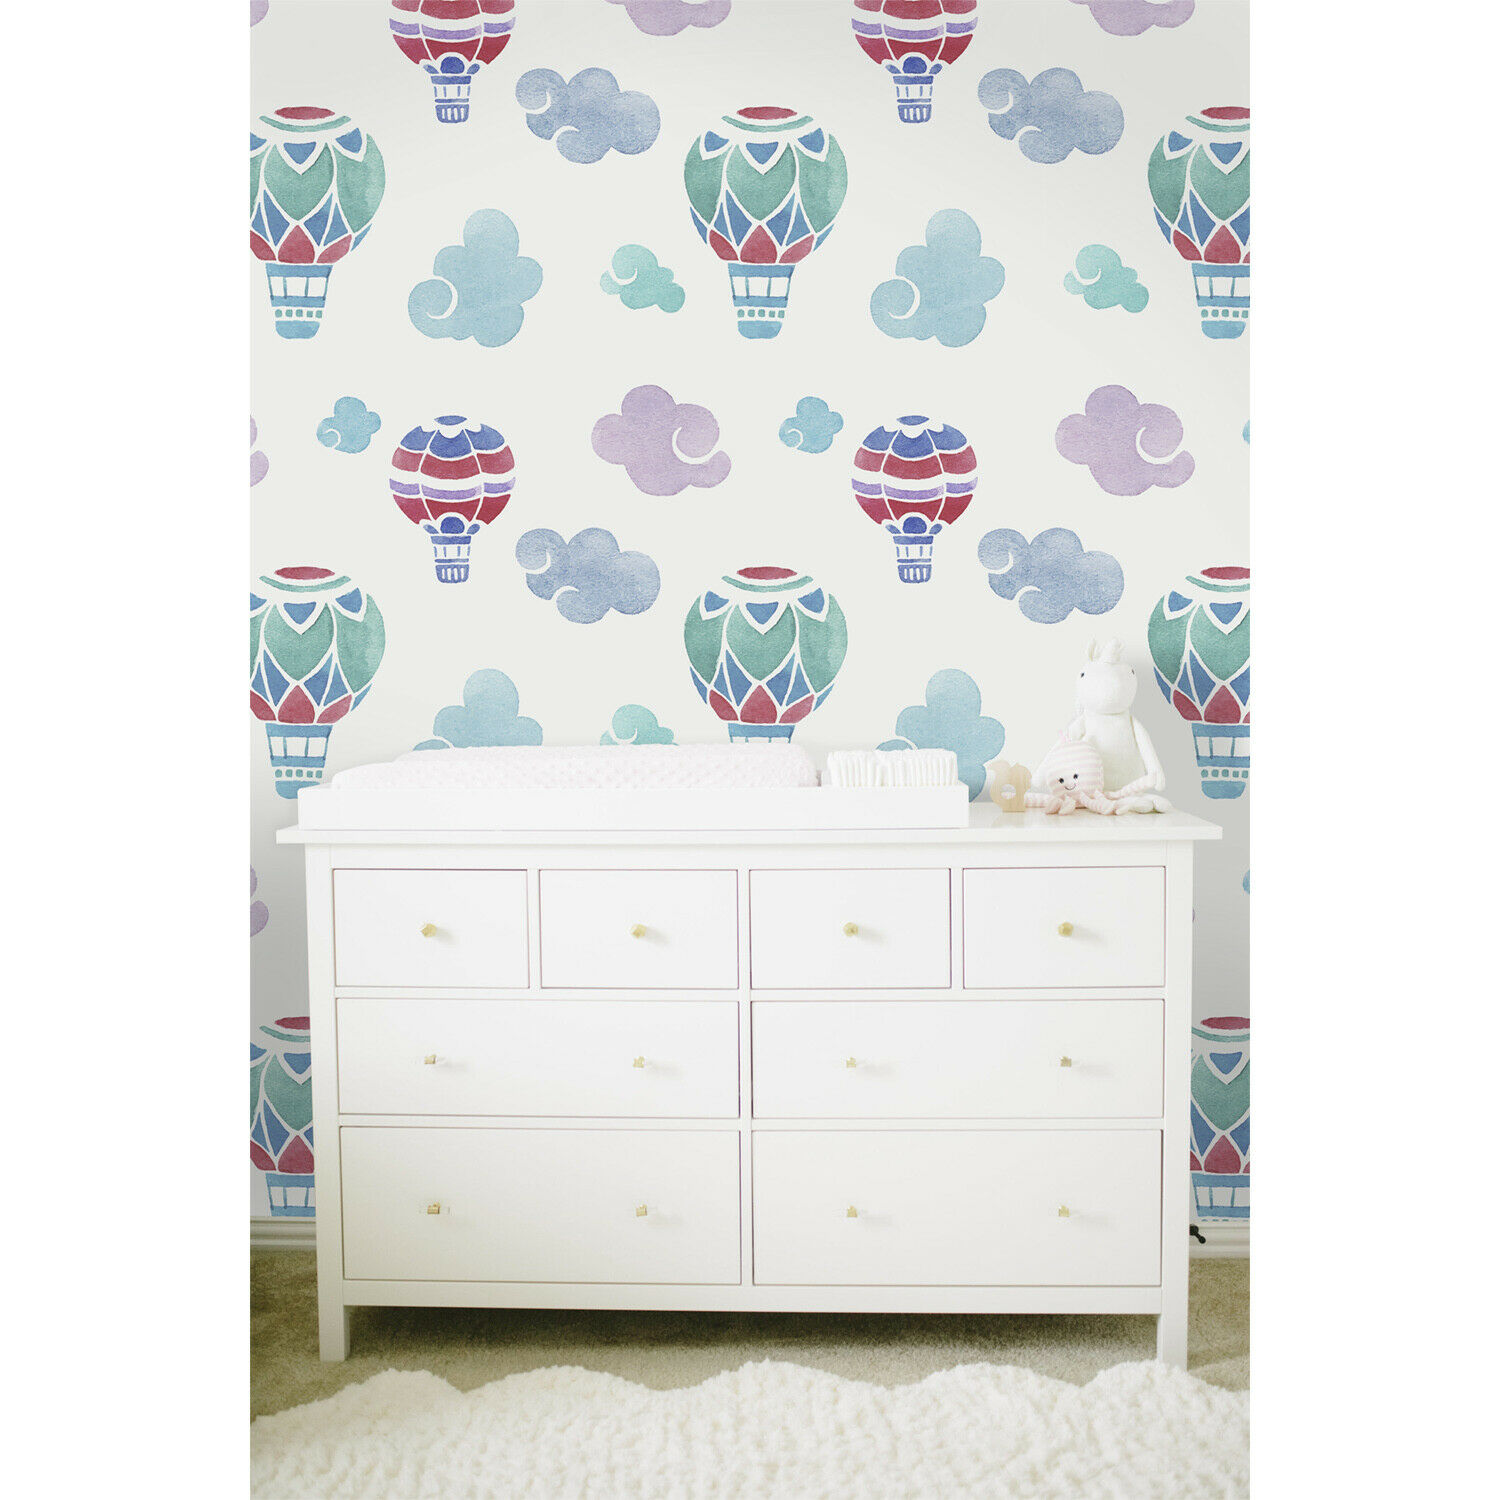 Non-Woven wallpaper Balloons WaterFarbe Pale Kids Nursery Baby Clouds Pastel